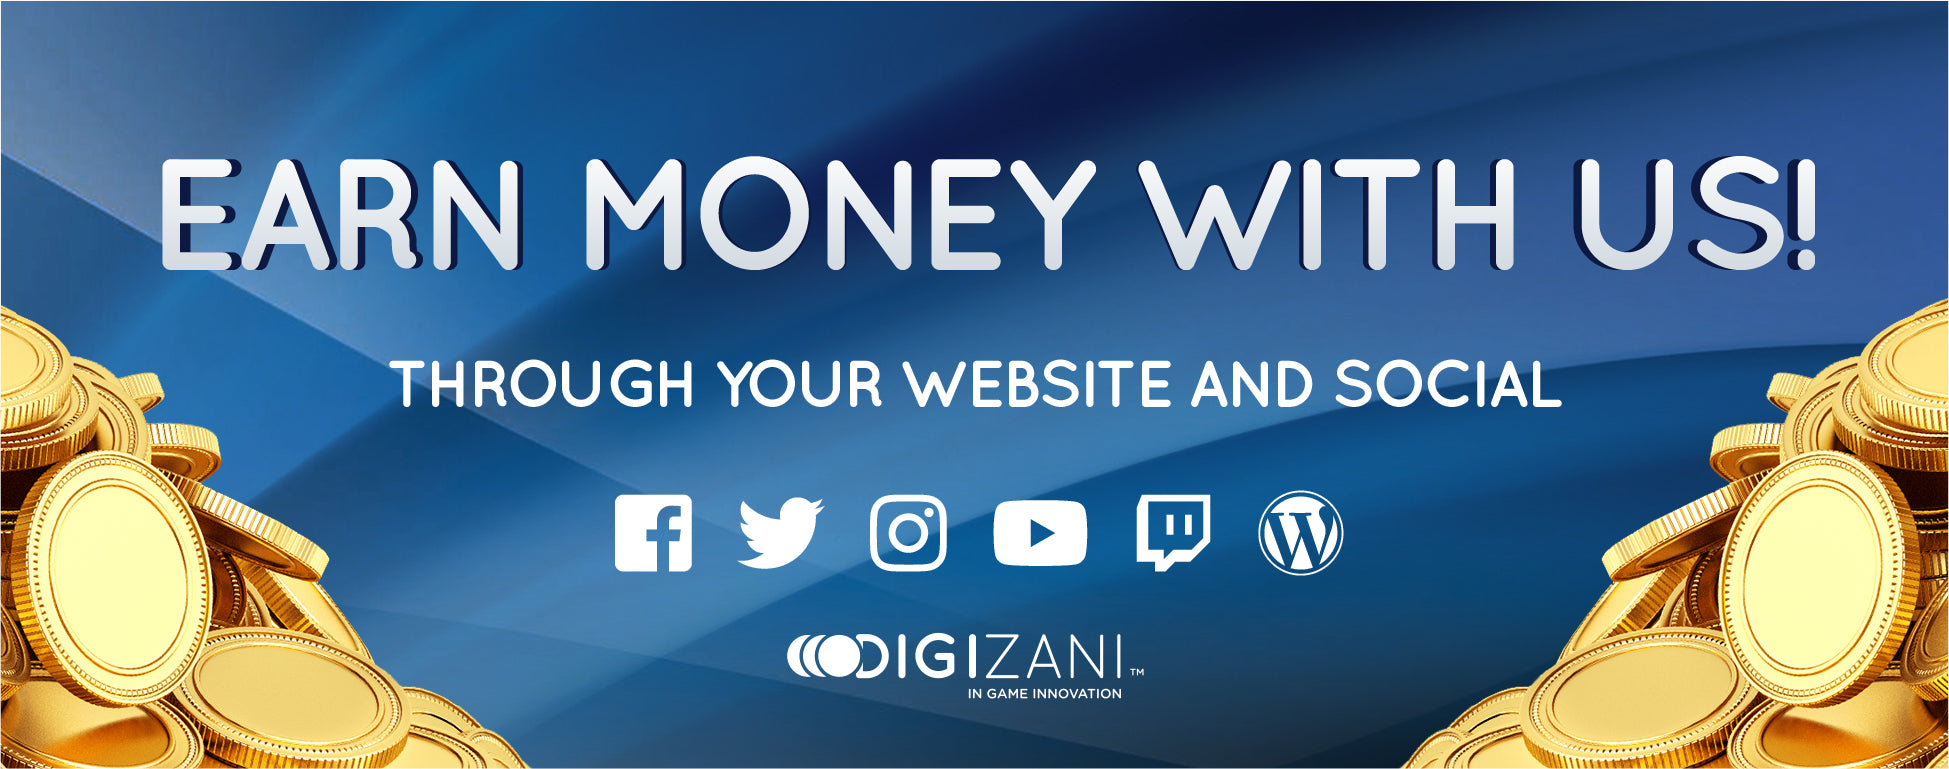 Earn money with us